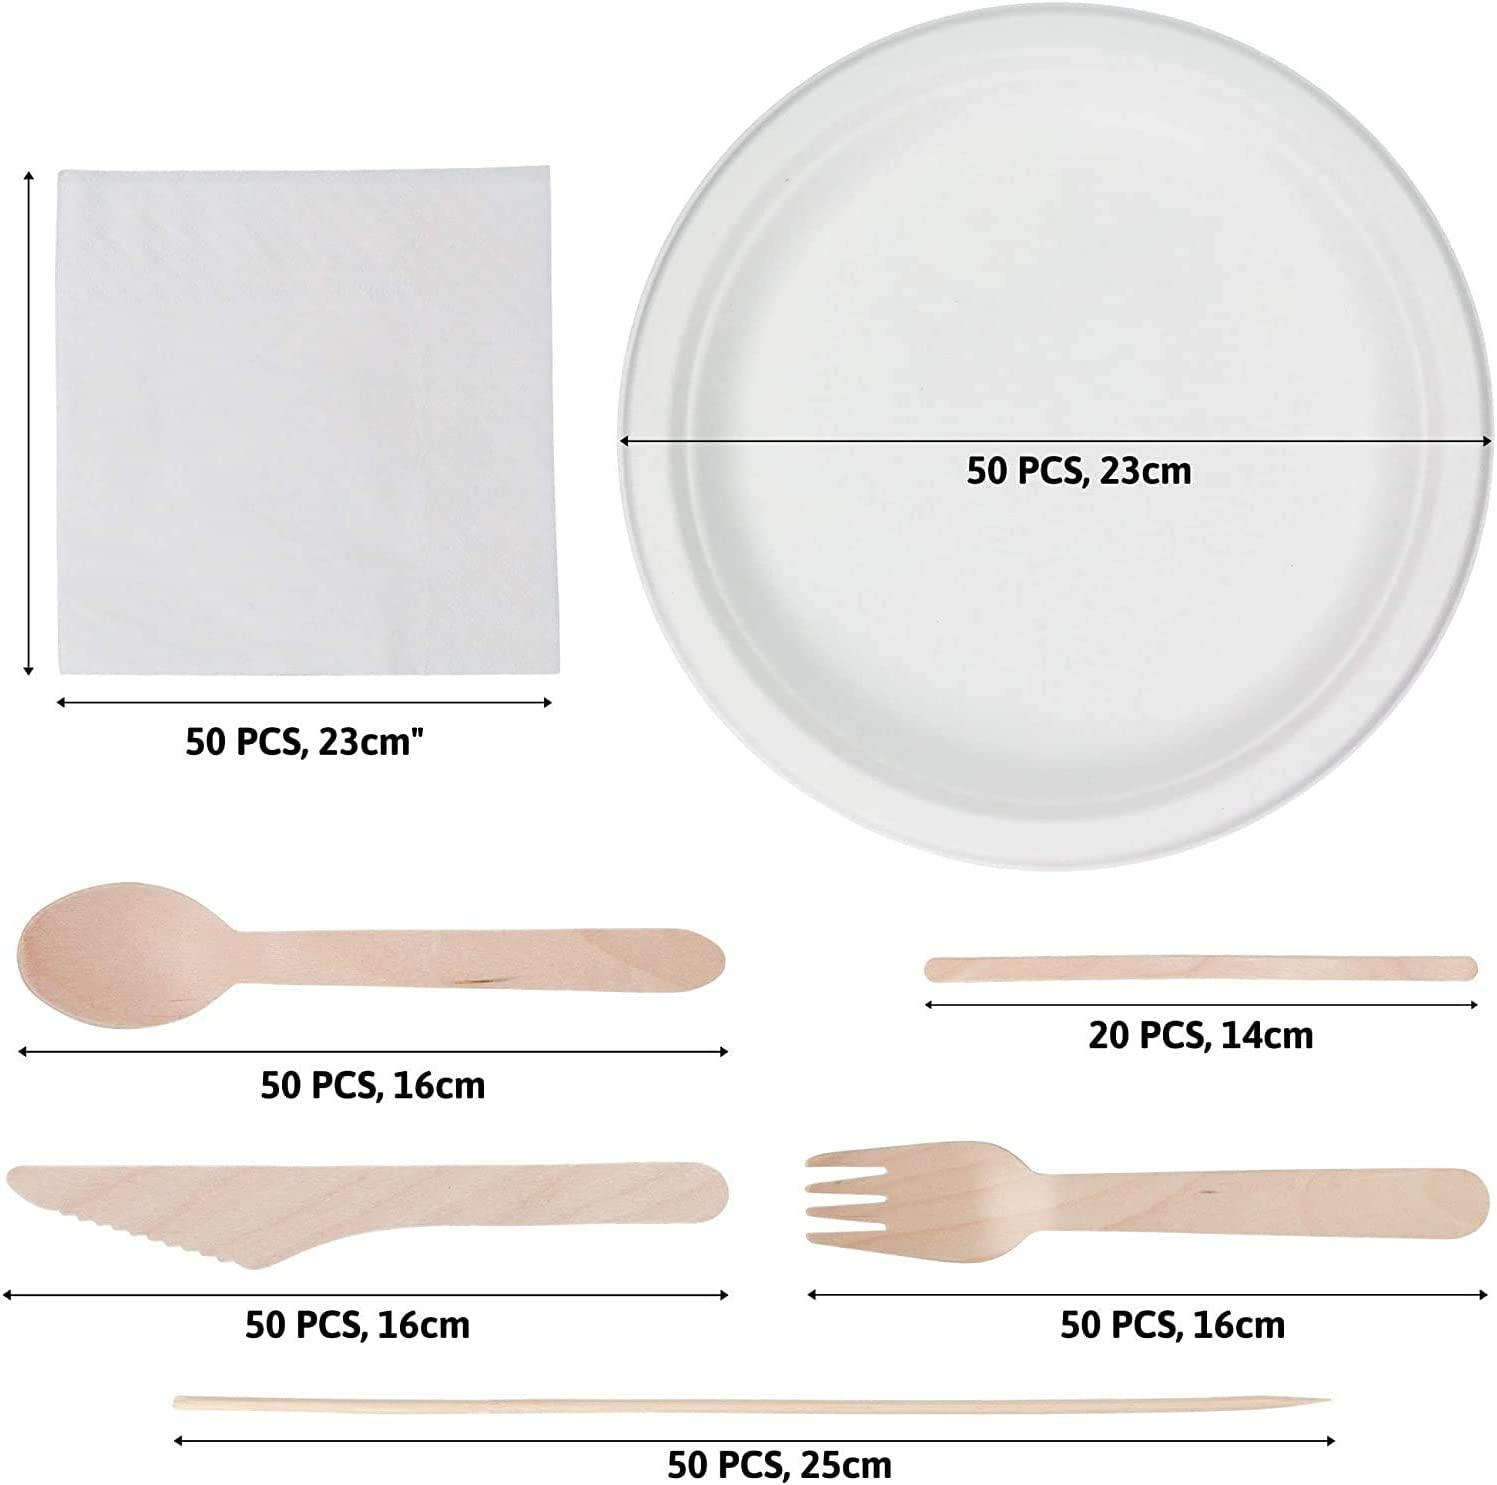 320 Set Disposable Tableware Bundle.ECO Friendly Biodegradable DINNERWARE Cutlery Set and Plate Set Wooden Microwave Safe Strong Heavy Duty Home Party Picnic Commercial USE